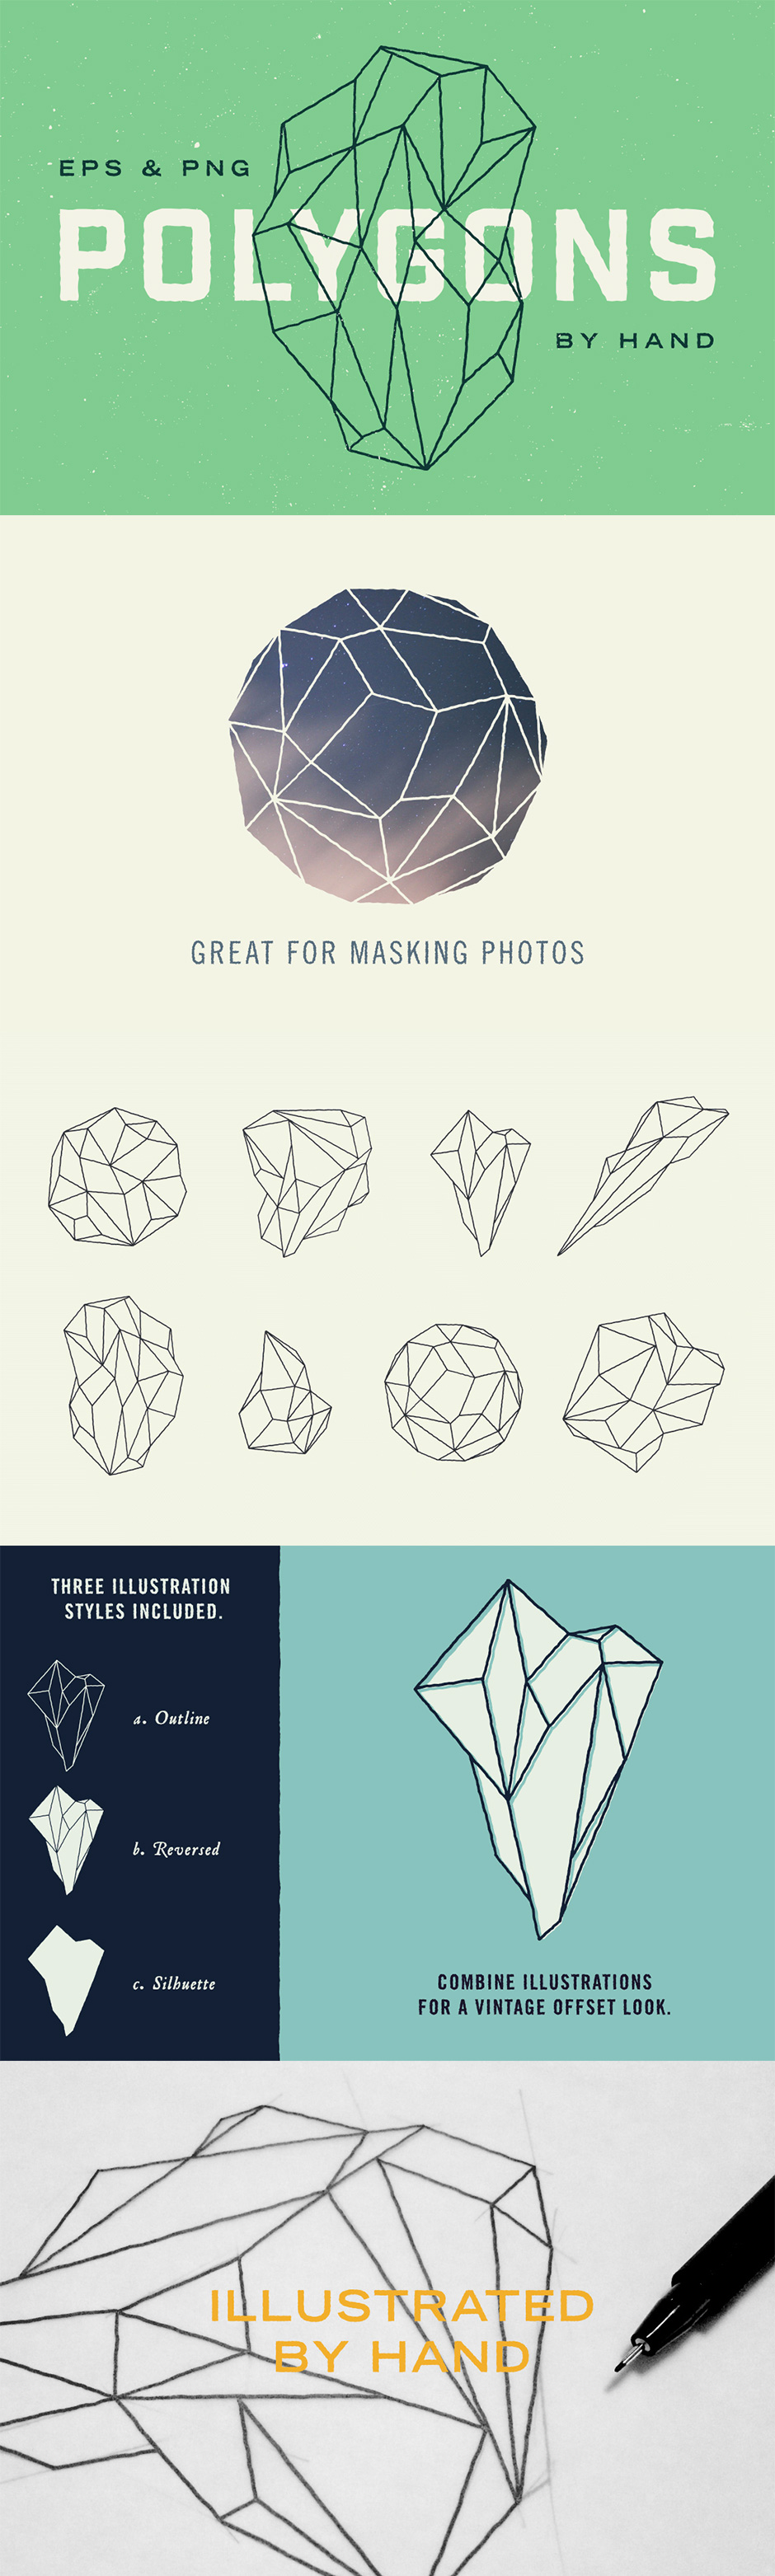 The Complete Vector Design Toolkit